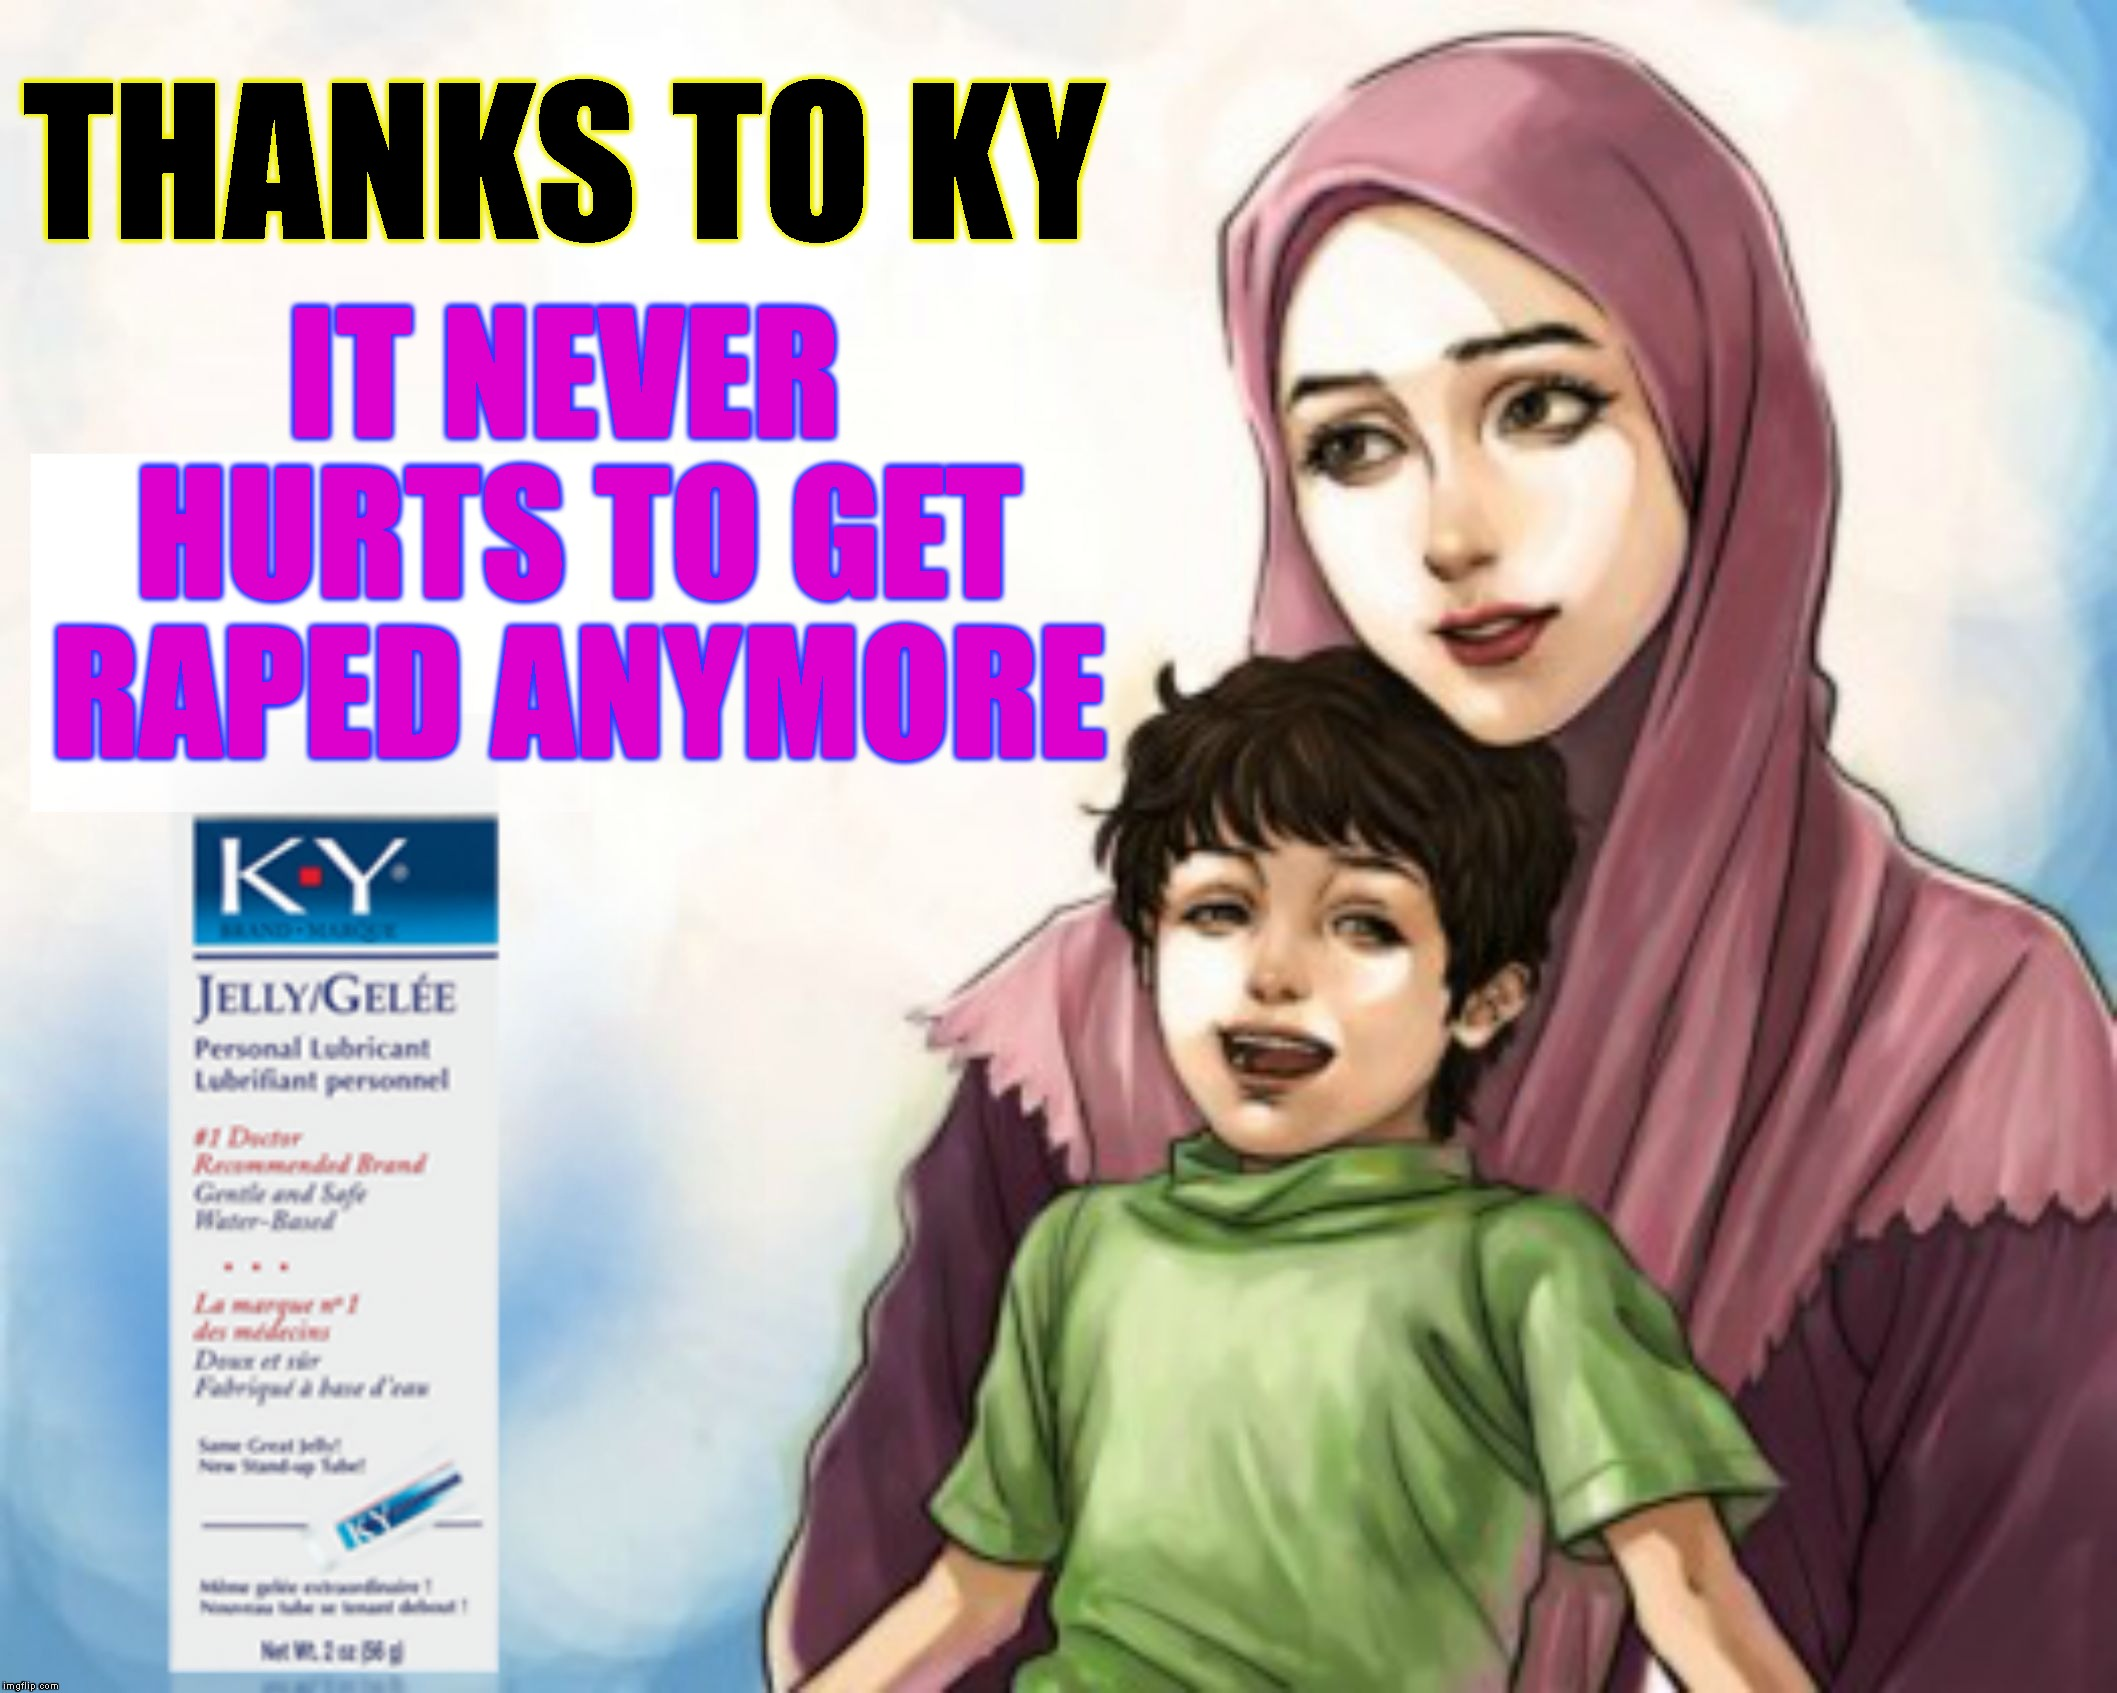 Because You Asked For It | IT NEVER HURTS TO GET **PED ANYMORE THANKS TO KY | image tagged in ky - you ask for it whenever you get raped,islam,rape,lube,muslims,easy | made w/ Imgflip meme maker